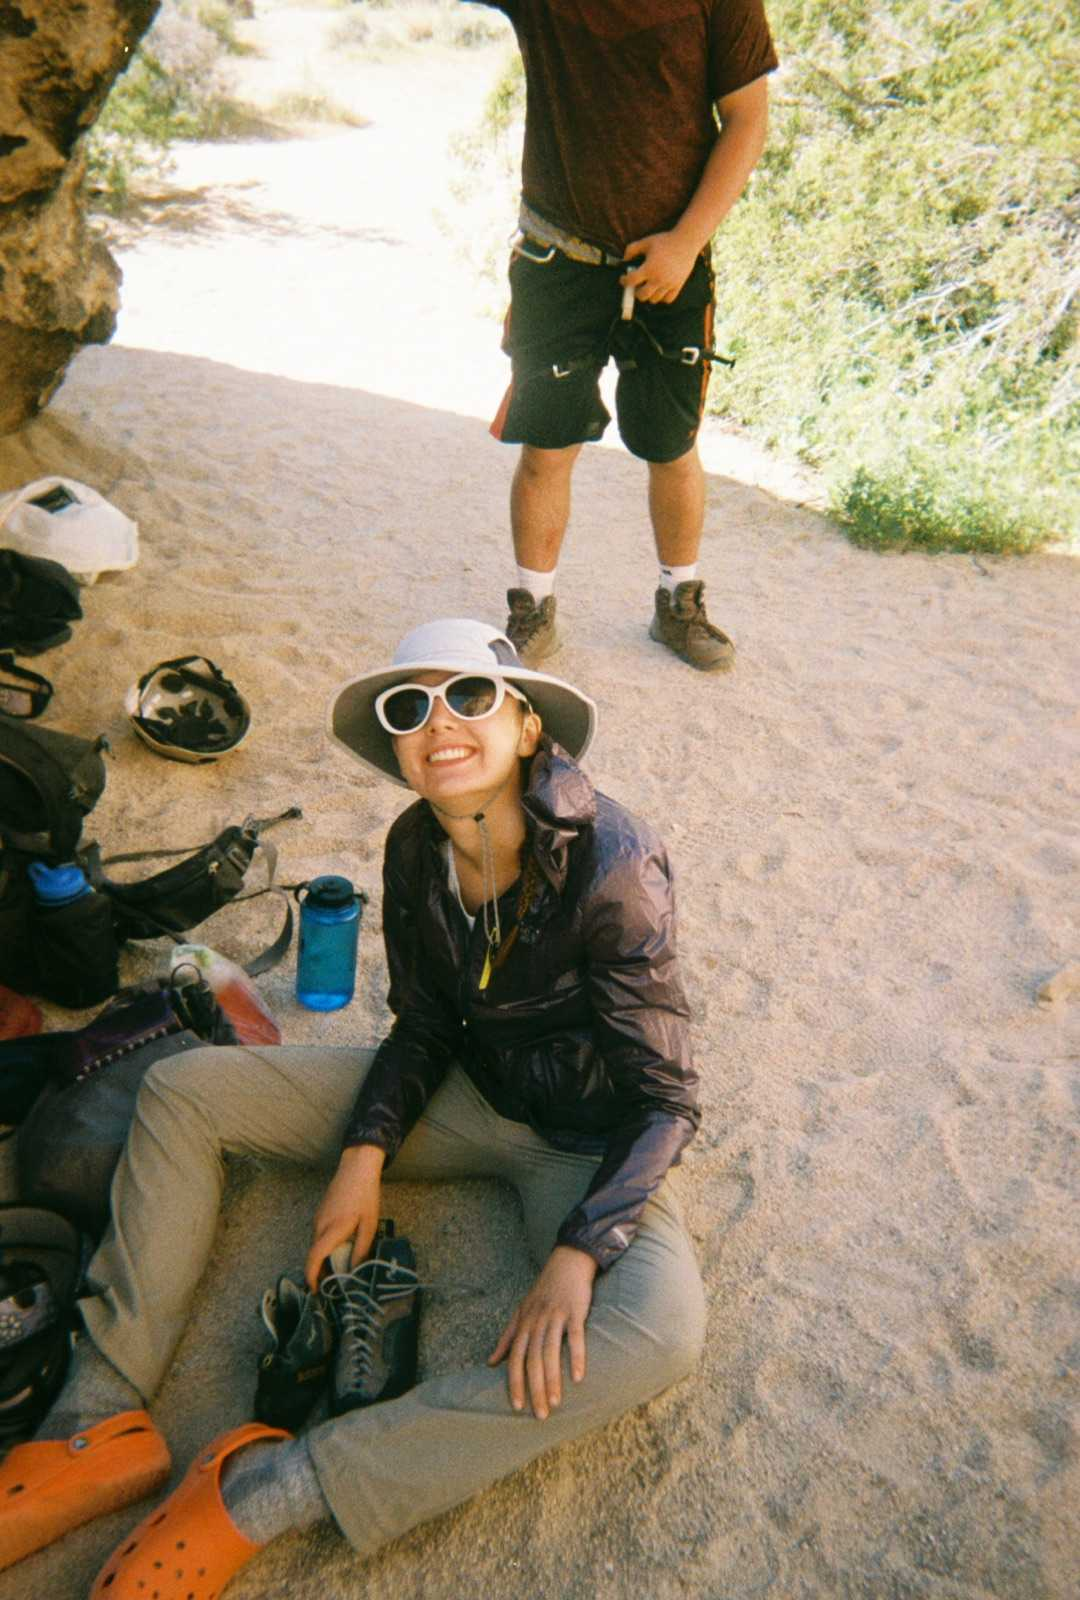 Taking a break from a long day of backpacking, Senior Anna Martin sits near Joshua Tree